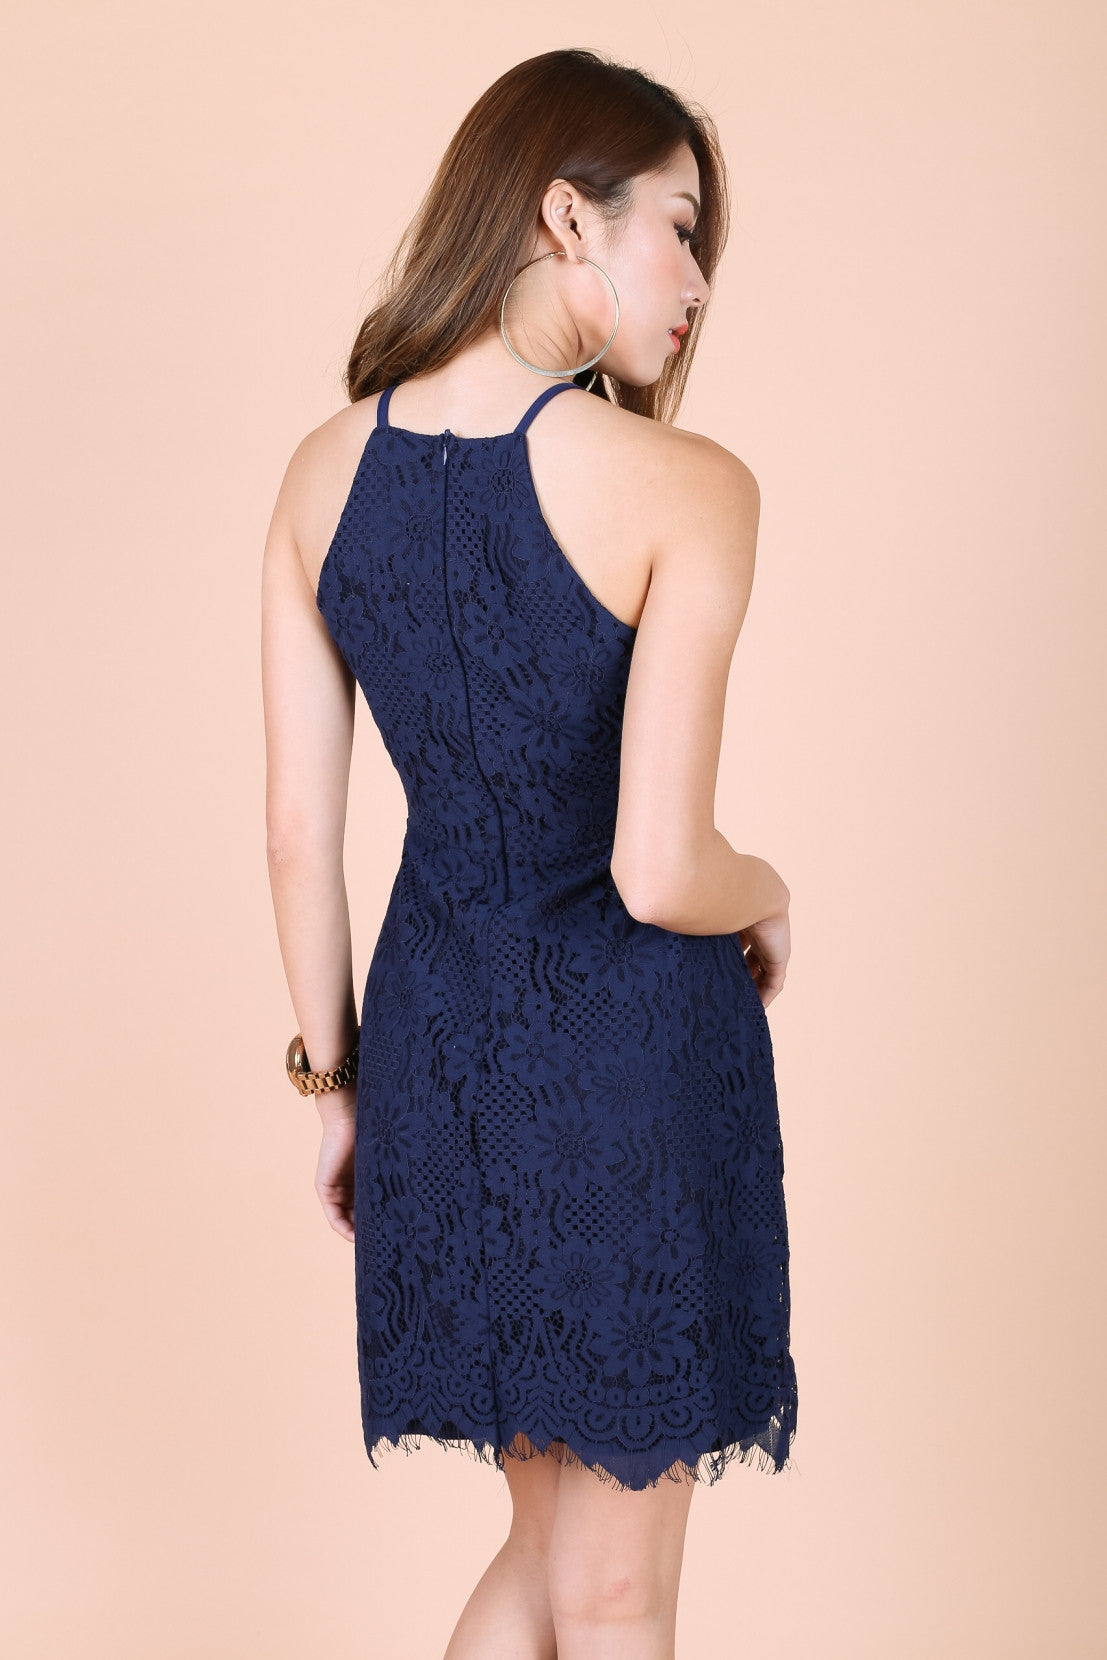 TOPAZ *PREMIUM* ZARA LACE DRESS IN NAVY